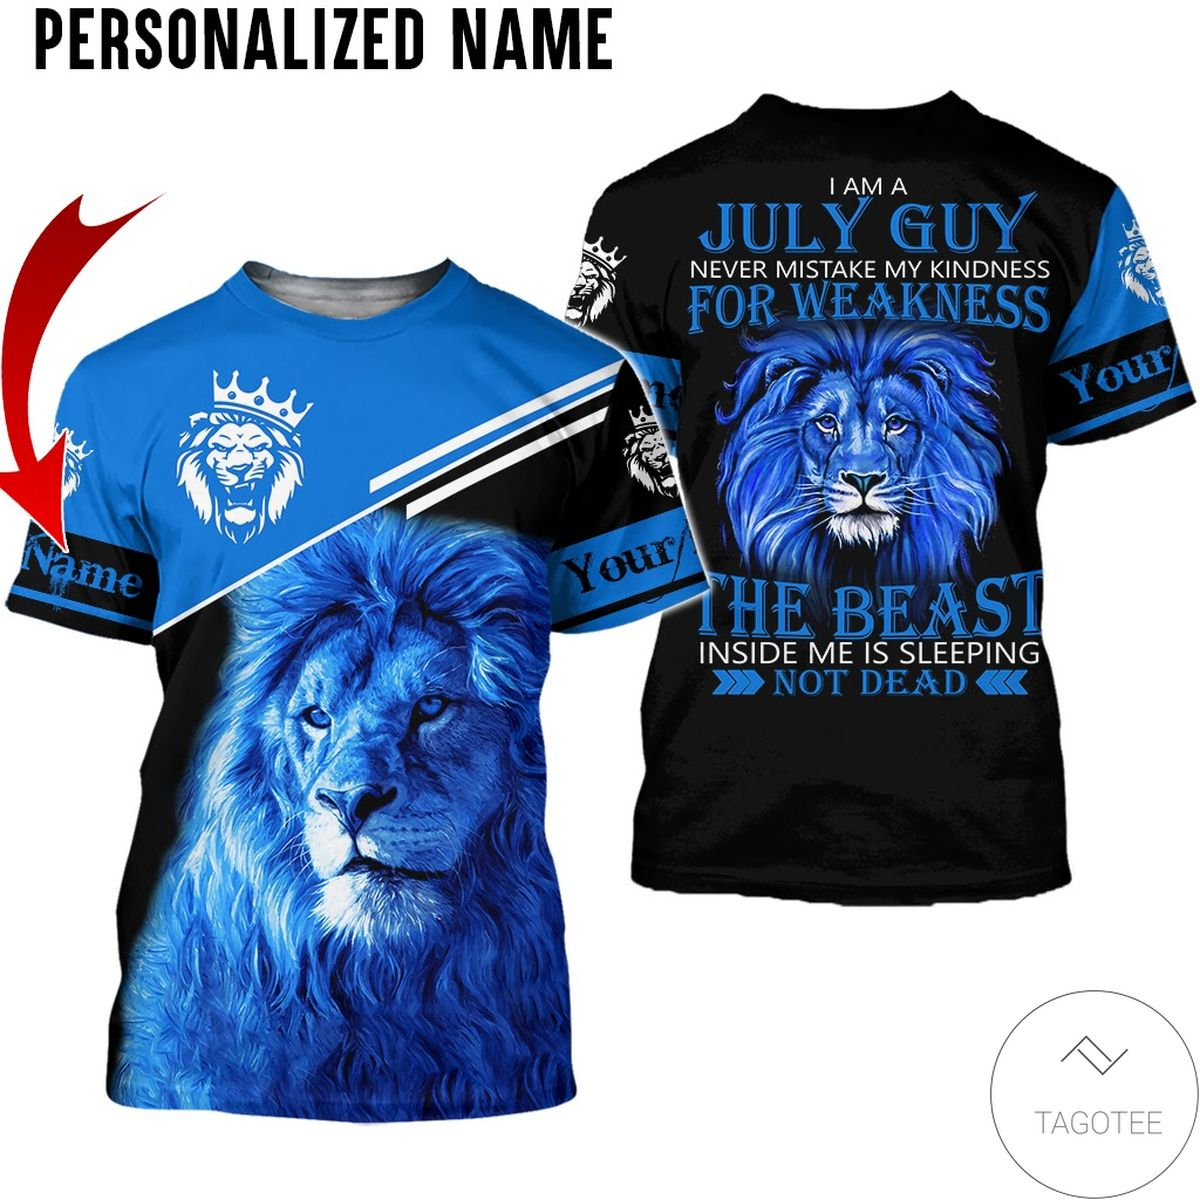 3D Personalized Name I'm July Guy The Beast Not Dead All Over Print Hoodie